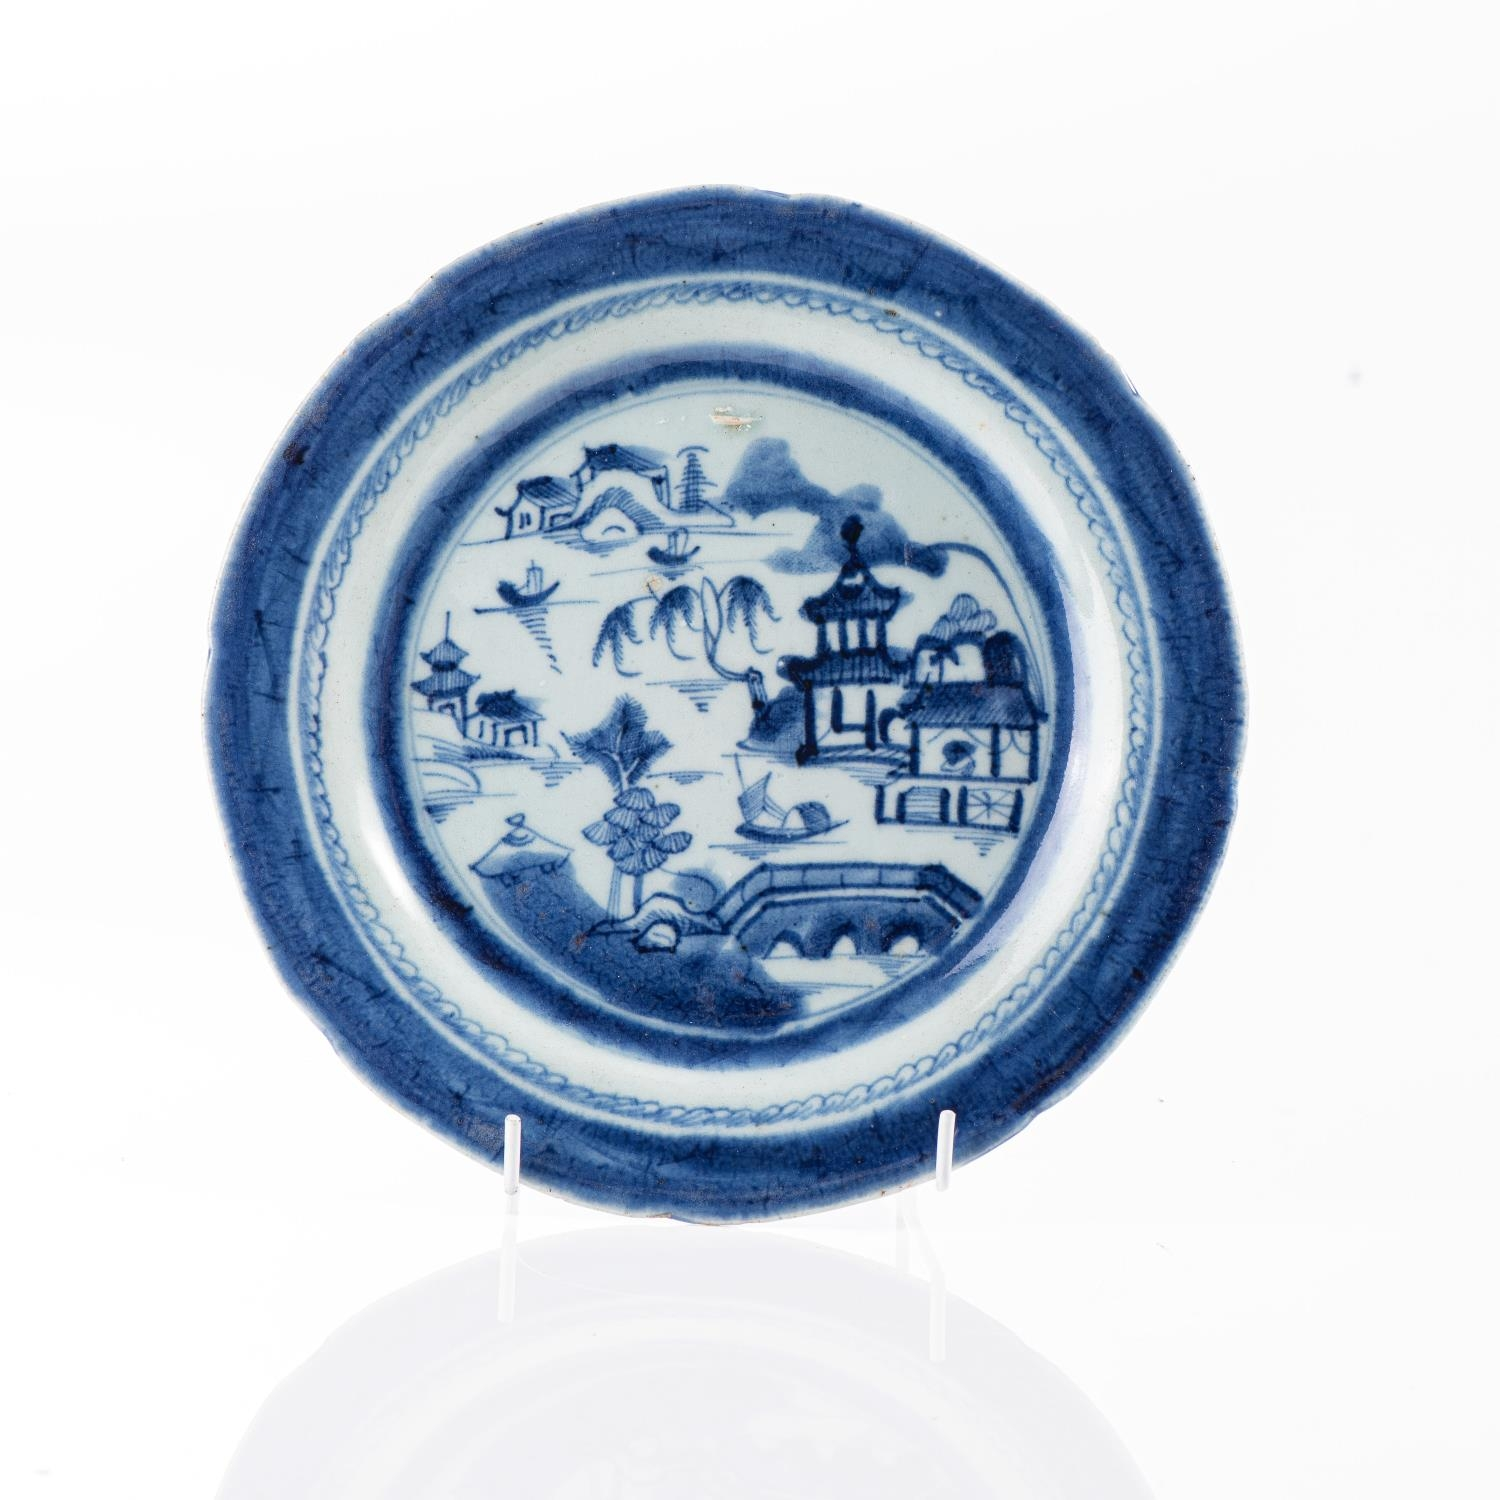 A CHINESE BLUE AND WHITE RIVER LANDSCAPE PLATE, QING DYNASTY, 19TH CENTURY